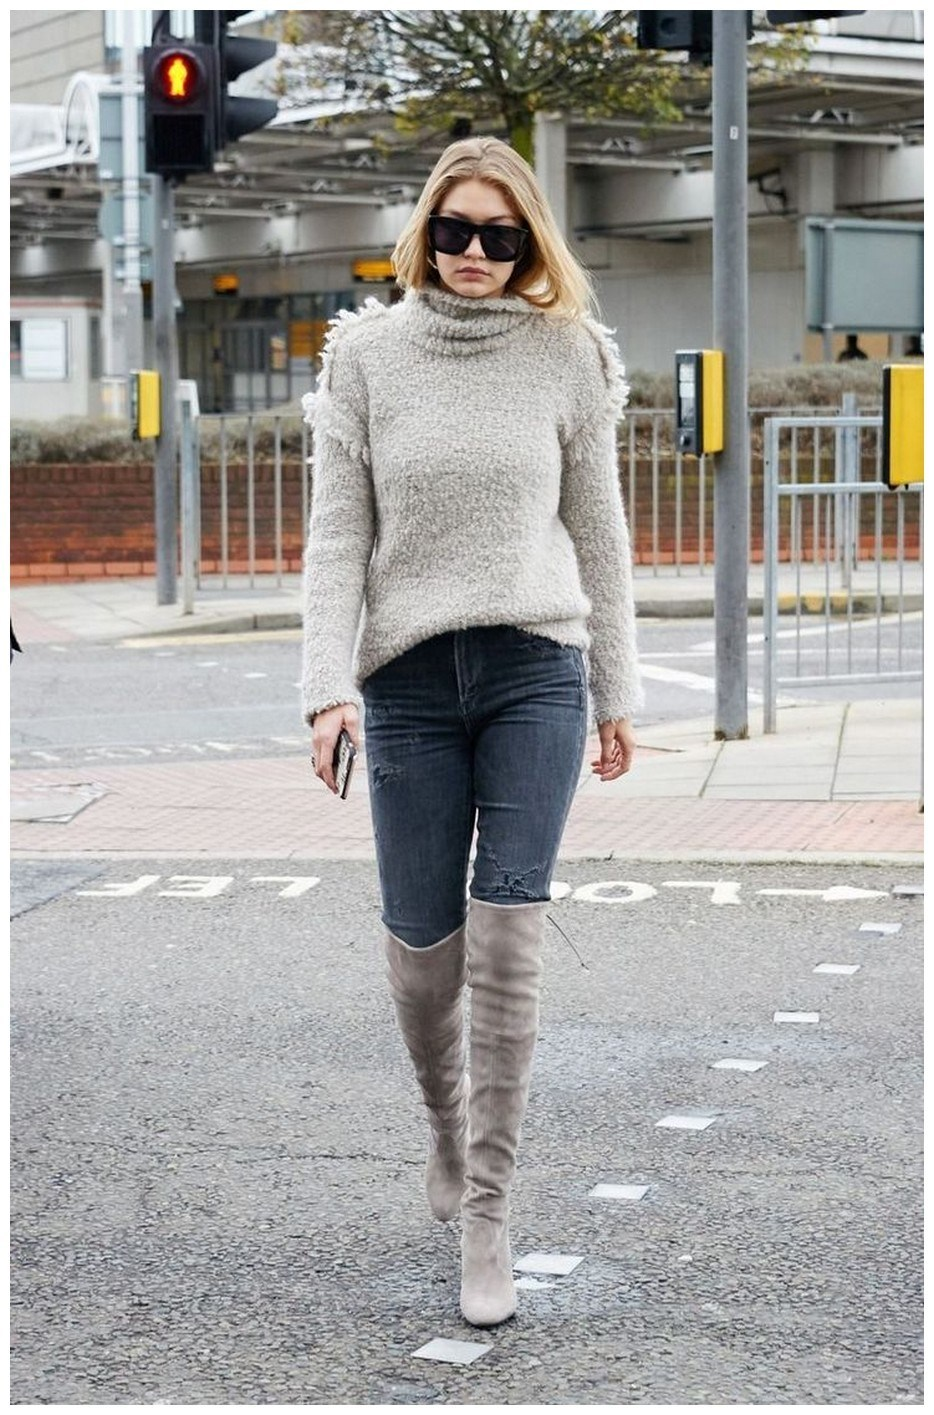 40+ ways to wear thigh high boots this winter 10